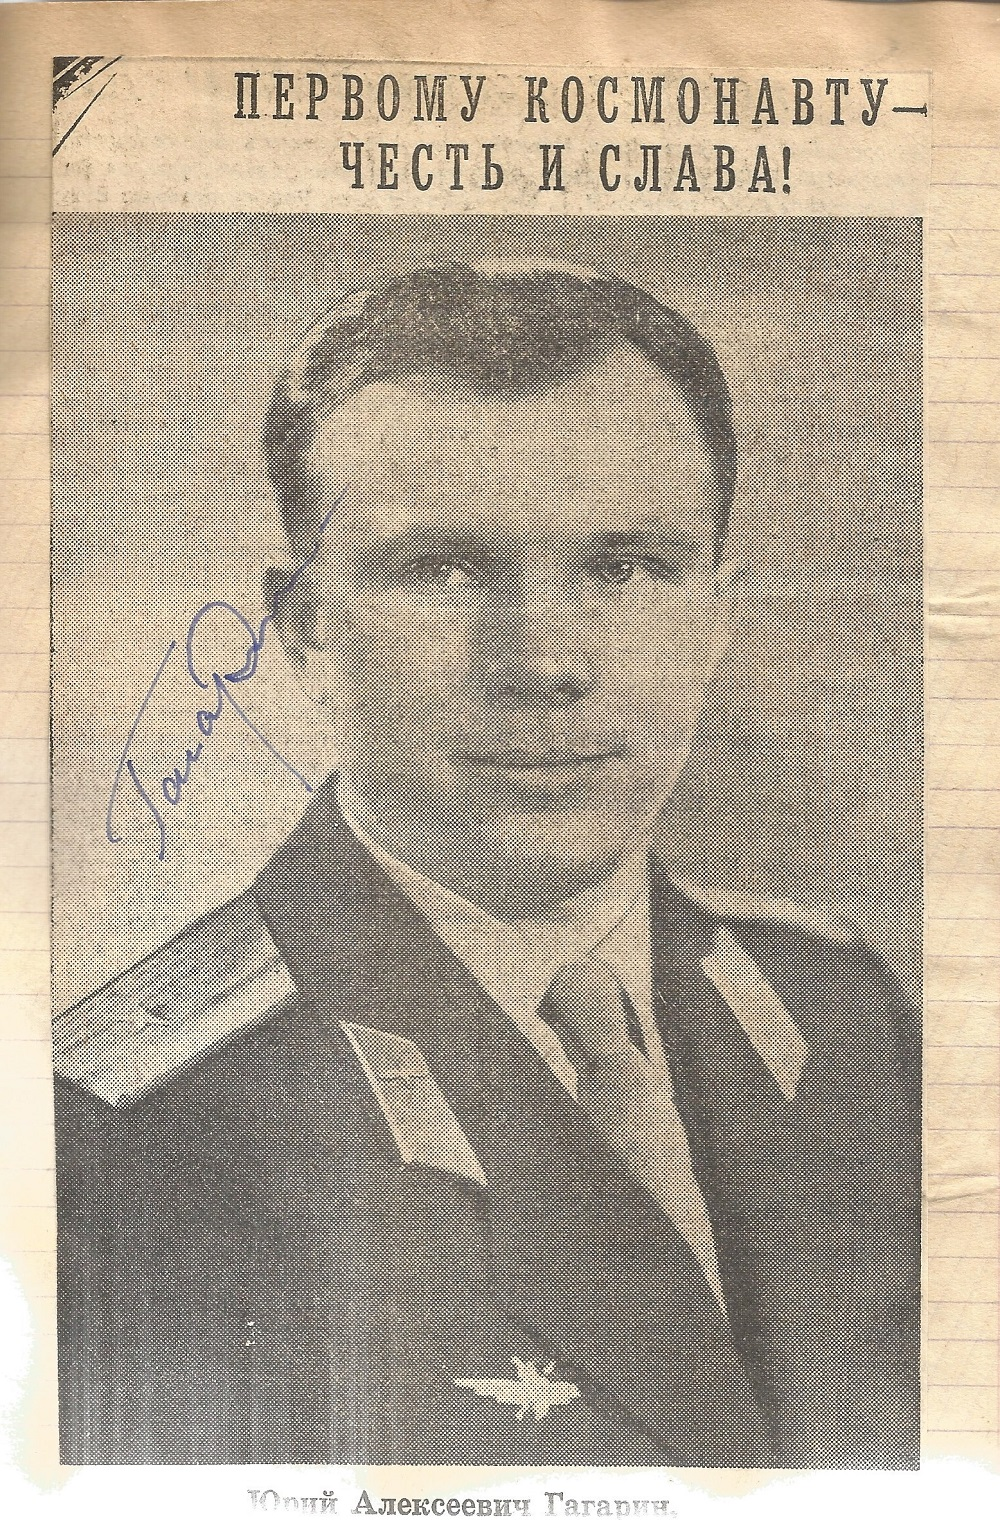 1950/60s Russian Cosmonauts multiple signed hard backed scrapbook compiled by a worker at Baikonur - Image 2 of 22